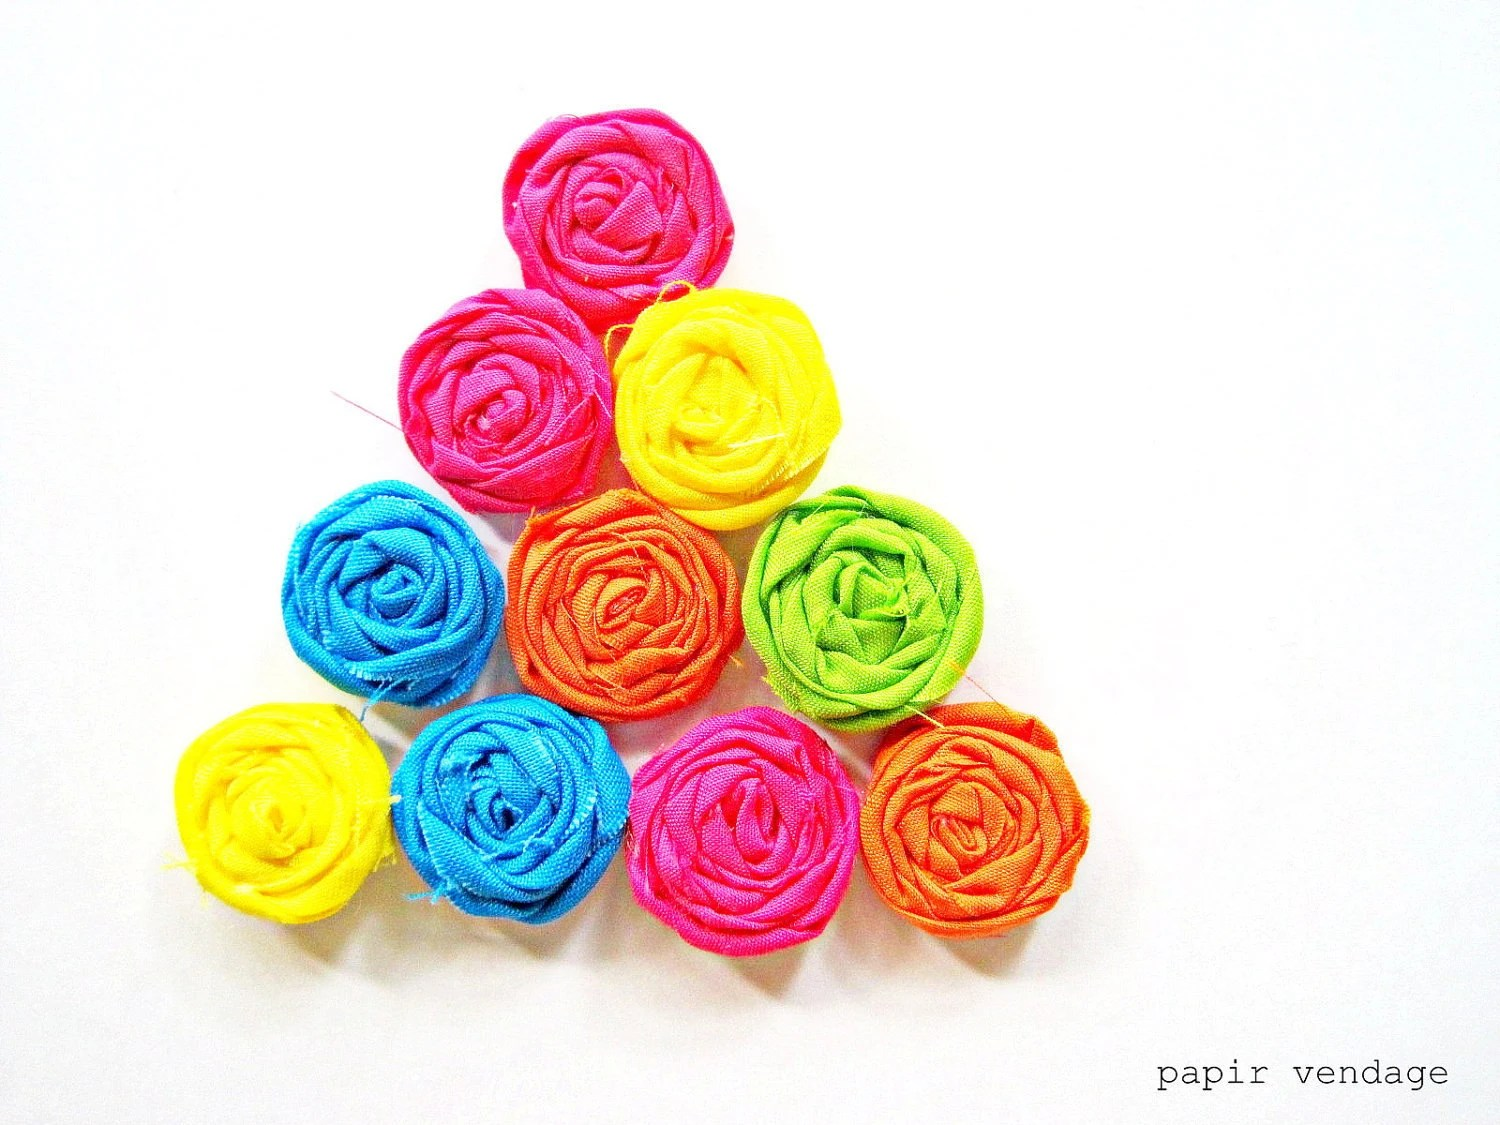 10 Neon Fabric Rosette Embellishments, Neon Pink, Green, Yellow, Orange & Blue, NEON Bright Summer Colors, Set of 10  (1 inch) Rosettes - papirvendage